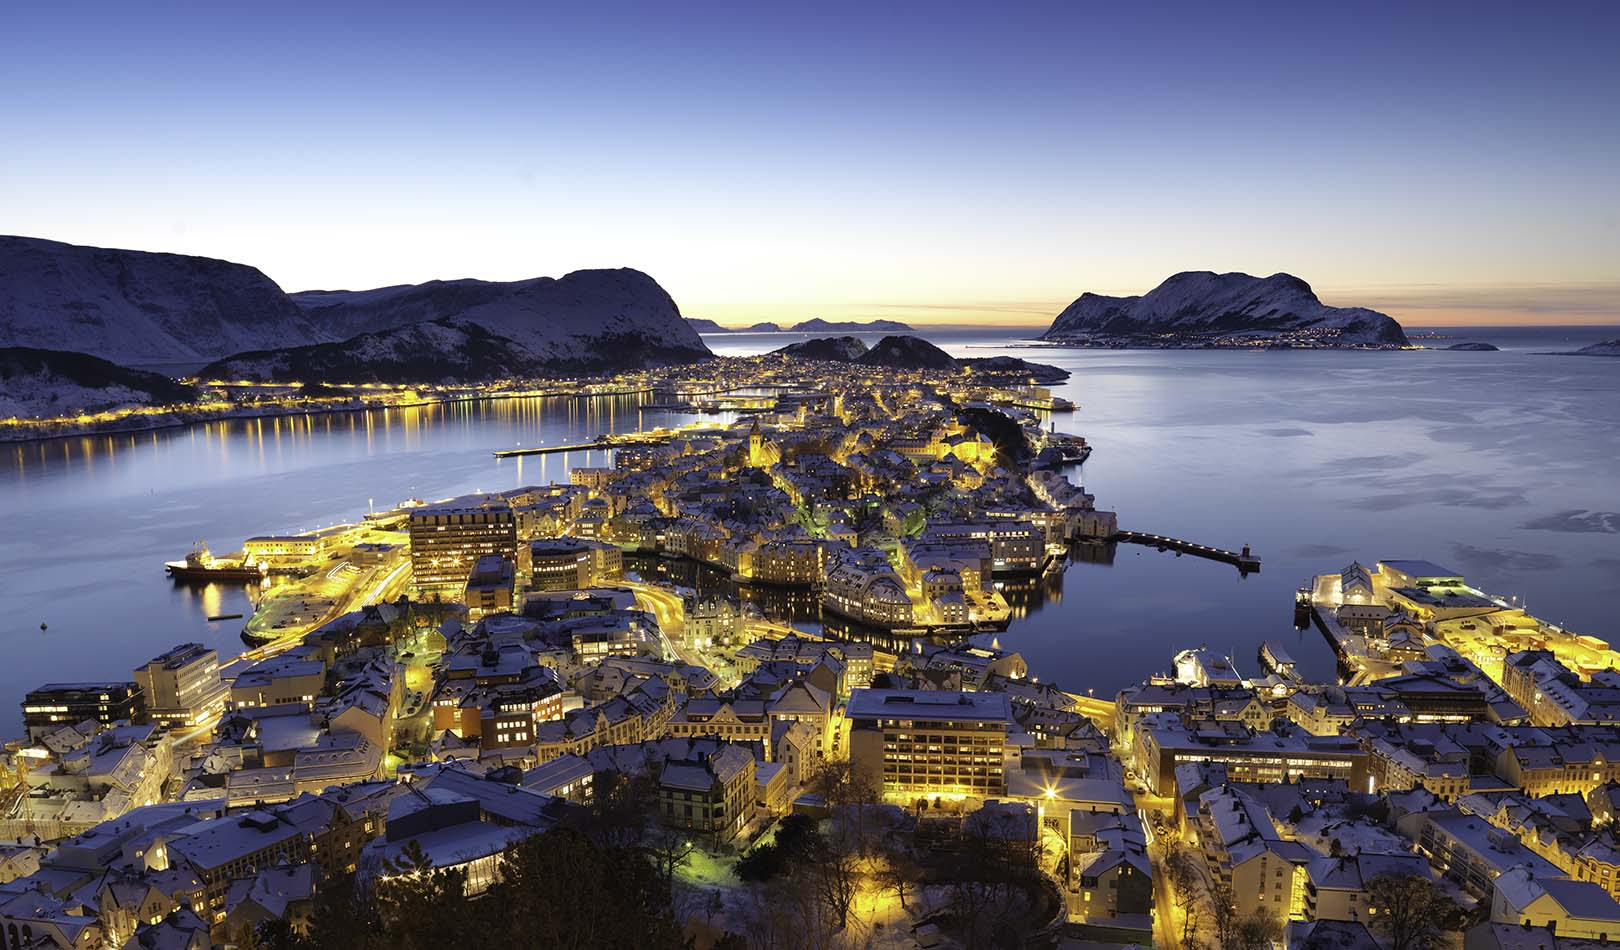 View over Ålesund in the evening.